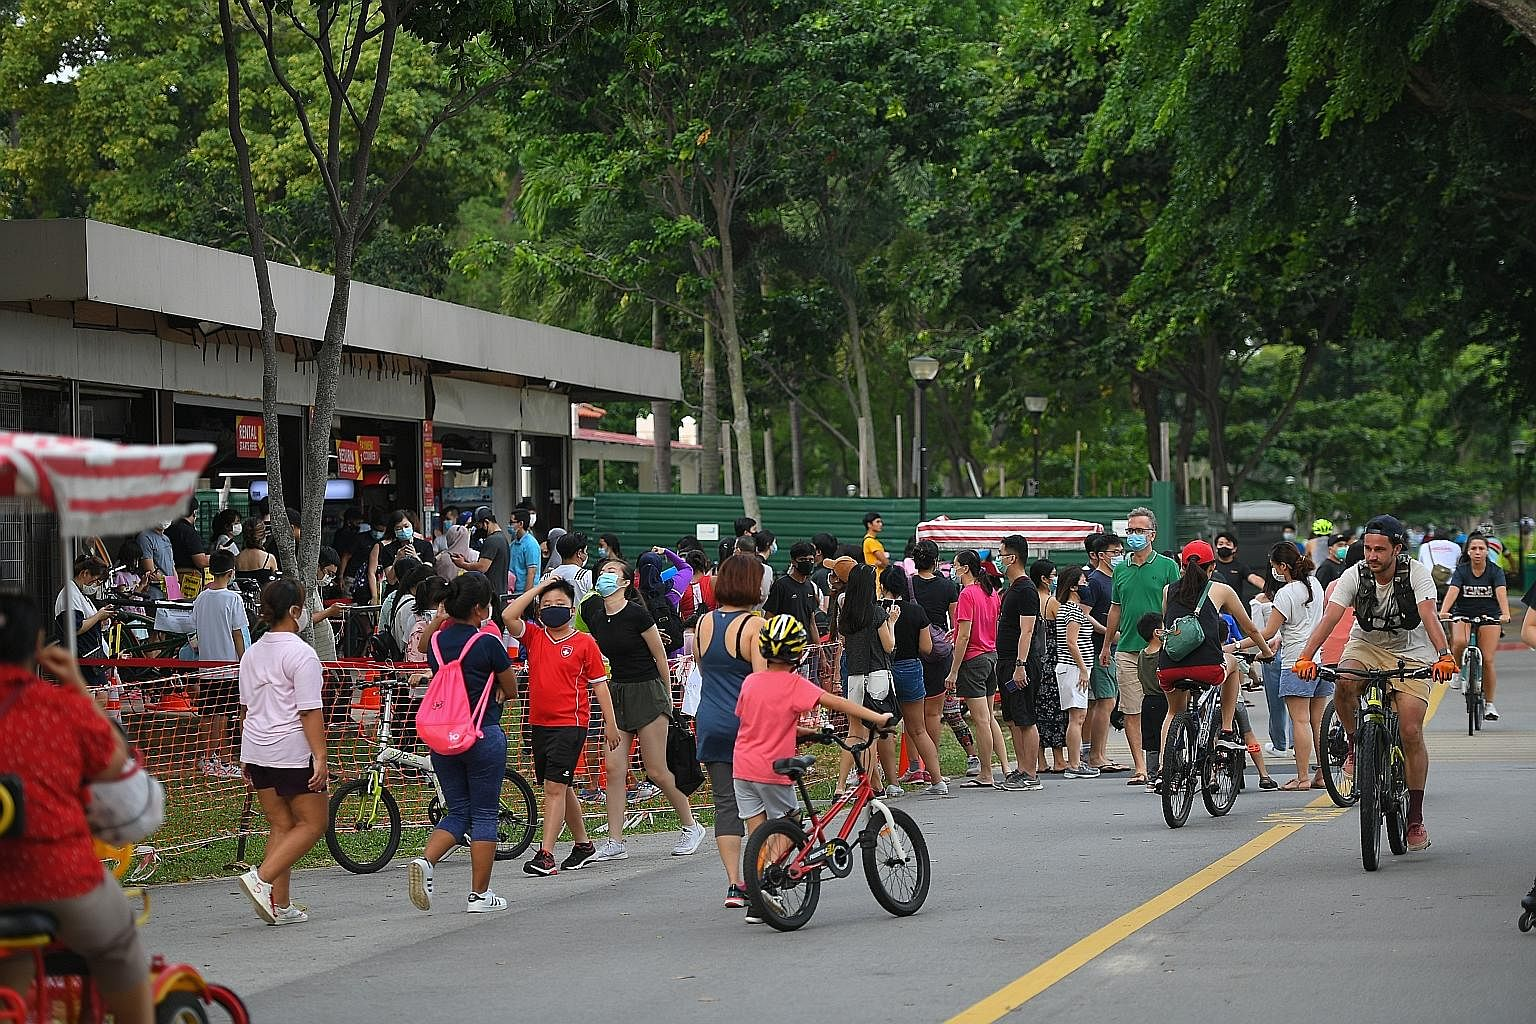 The lunch-time crowd in Bugis Street on Tuesday. More travellers are expected as Singapore gradually reopens its borders. The bustle near a bicycle rental shop in East Coast Park last Friday. Covid-19 task force co-chair Lawrence Wong said Singapore